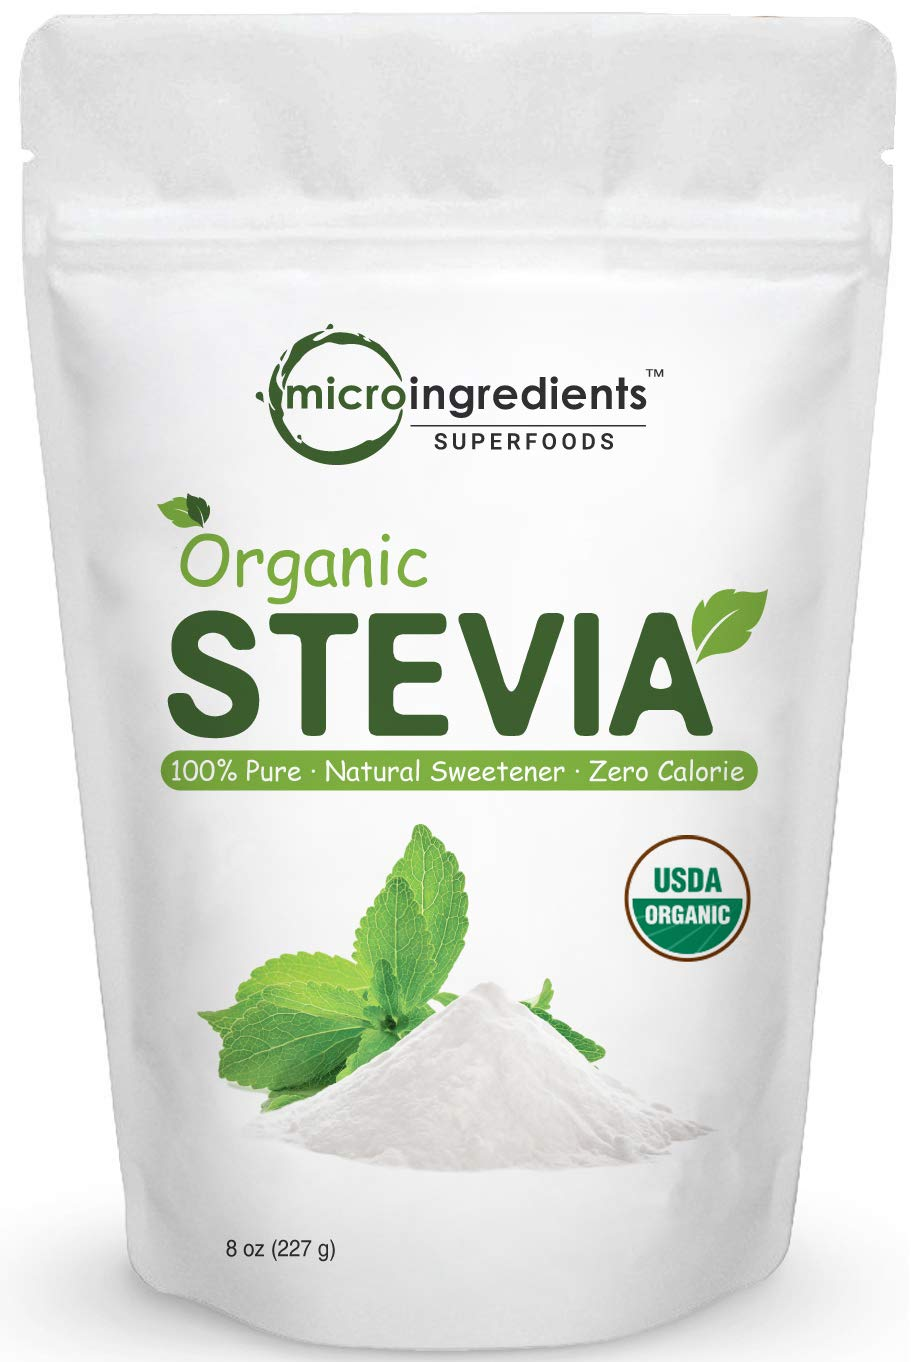 Pure Organic Stevia Powder, 8 Ounce, 1418 Serving, 0 Calorie, Natural Sweetener and Sugar Alternative, No GMOs and Vegan Friendly by Micro Ingredients (Image #1)